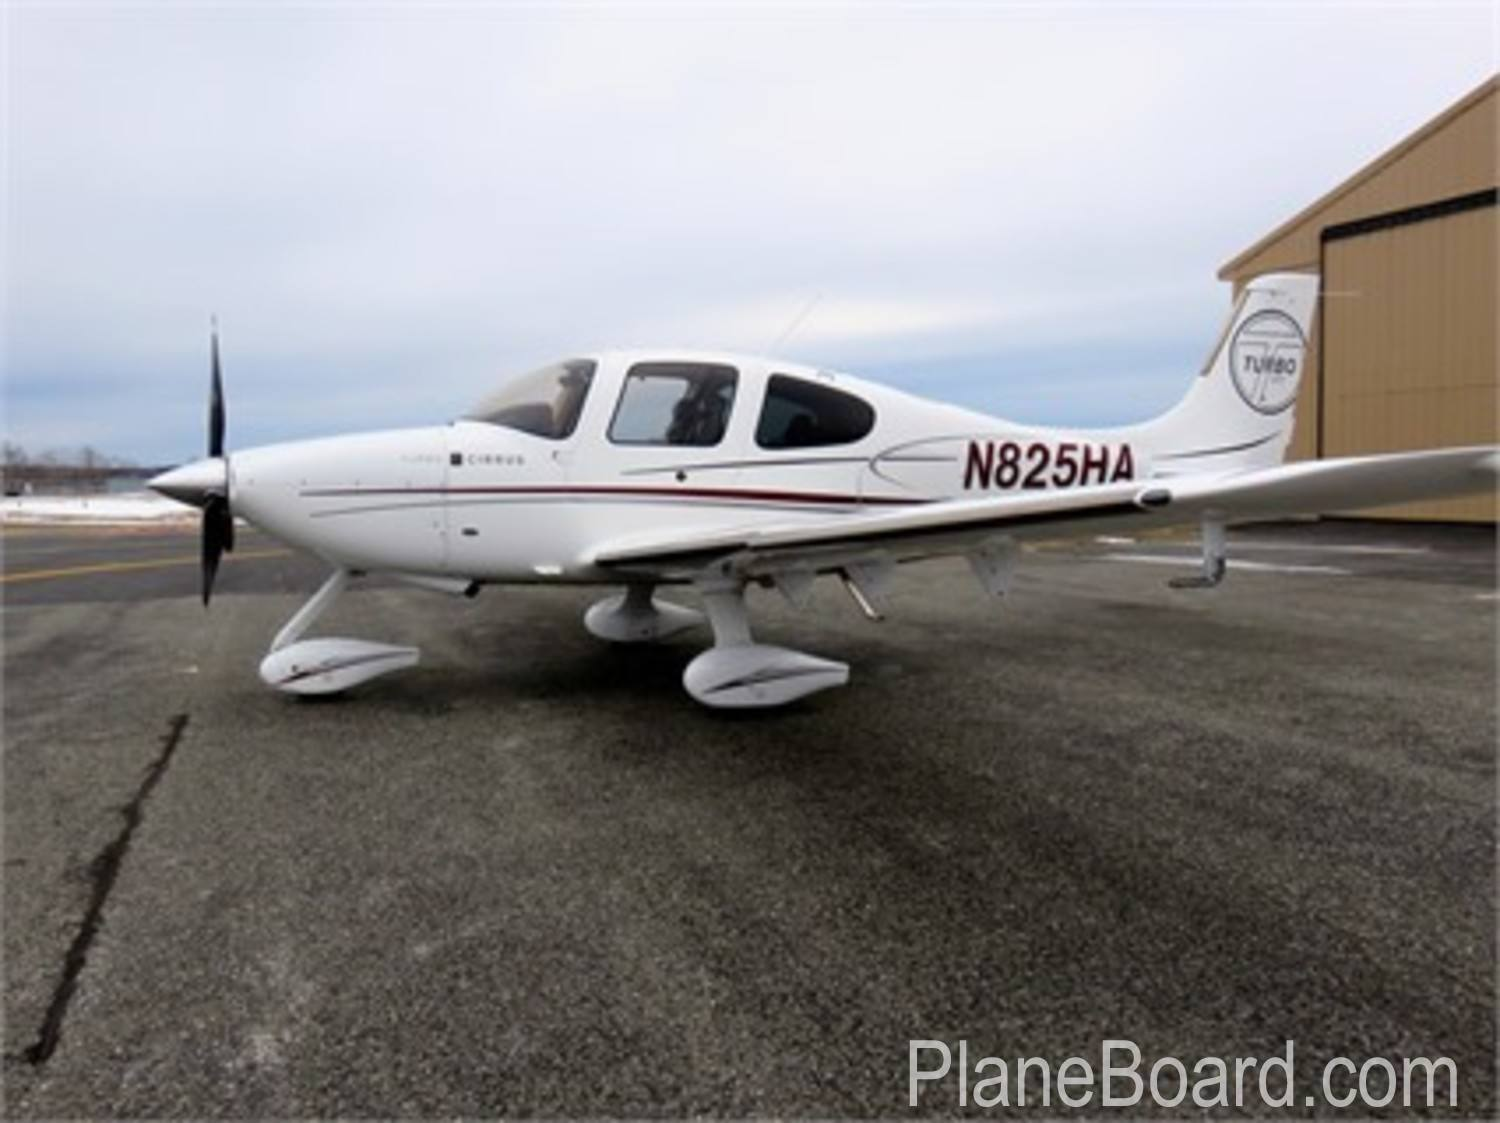 2009 Cirrus SR22-G3 Turbo GTS primary